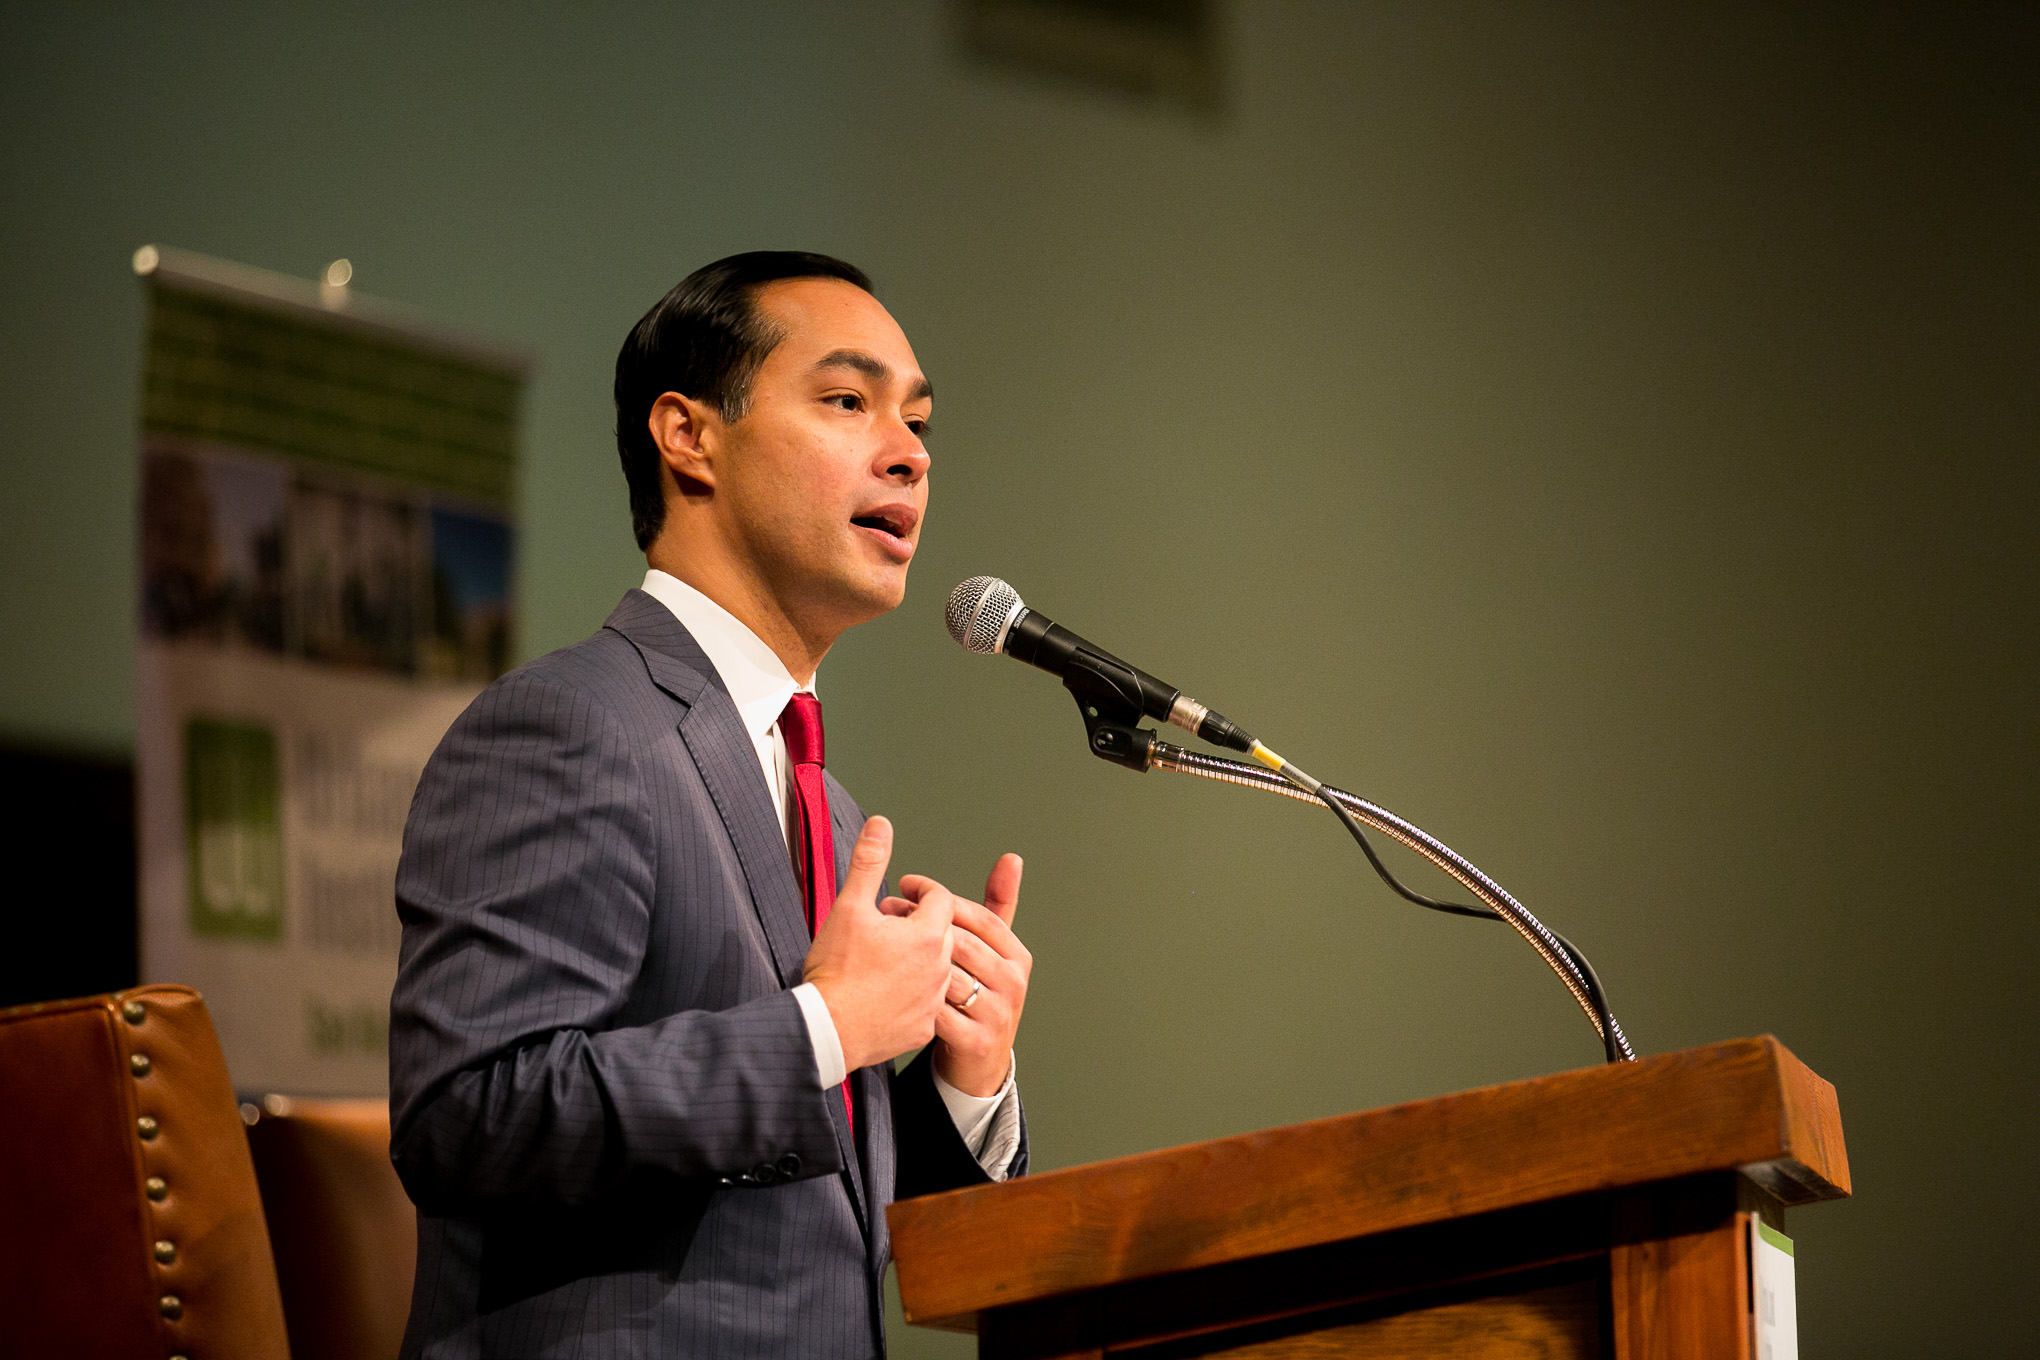 Secretary of Housing and Urban Development Julián Castro speaks at the ULI Housing Luncheon about the need for the Eastside to have equal opportunity in San Antonio.